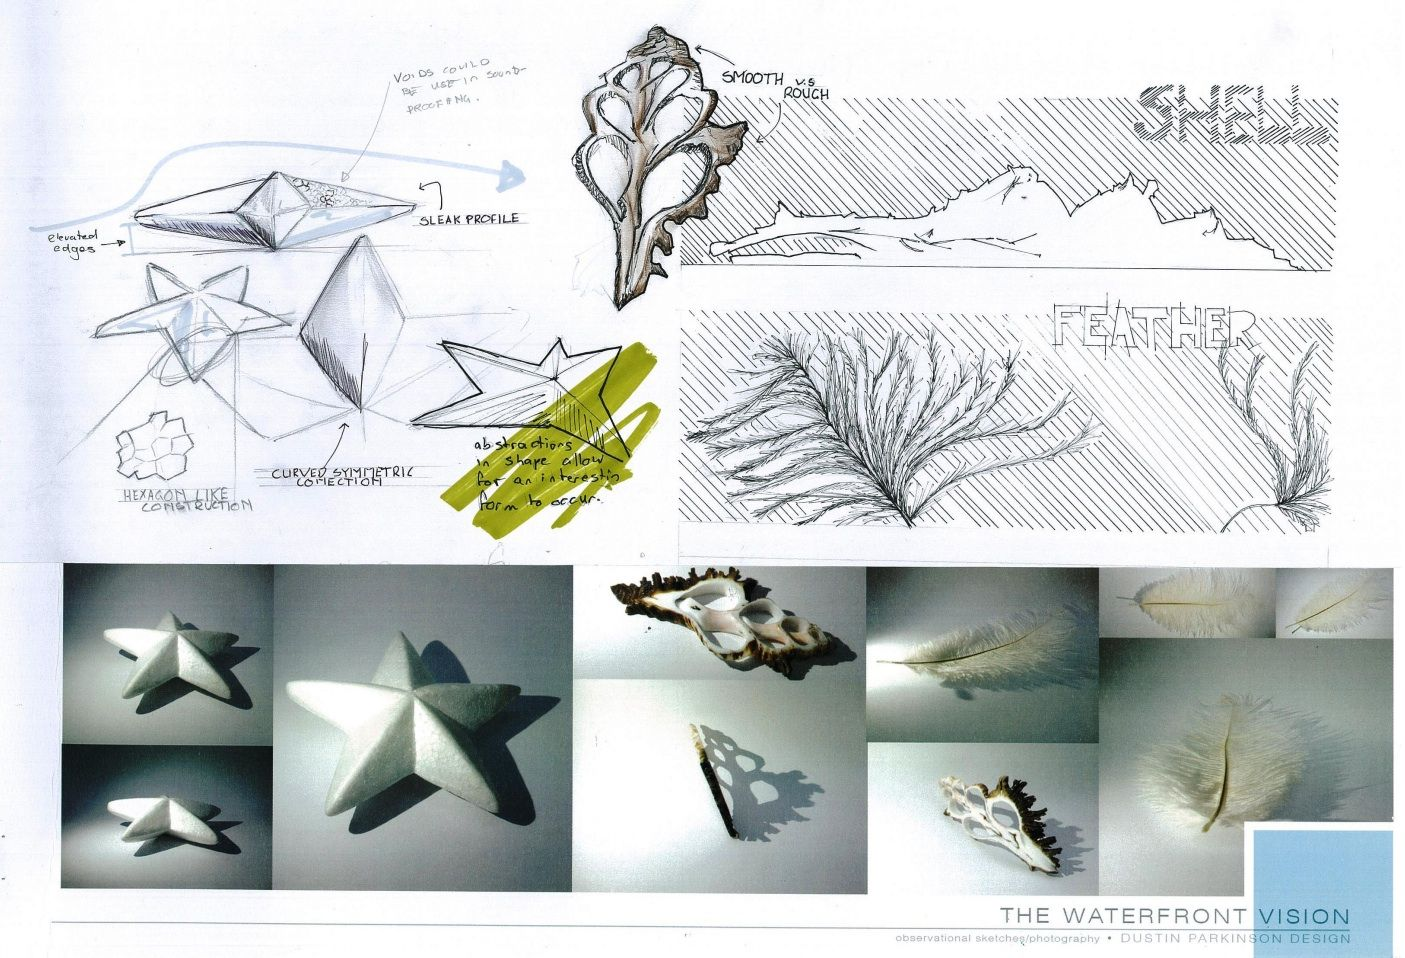 Pin by Gill Smillie on Year 13 Visual communication